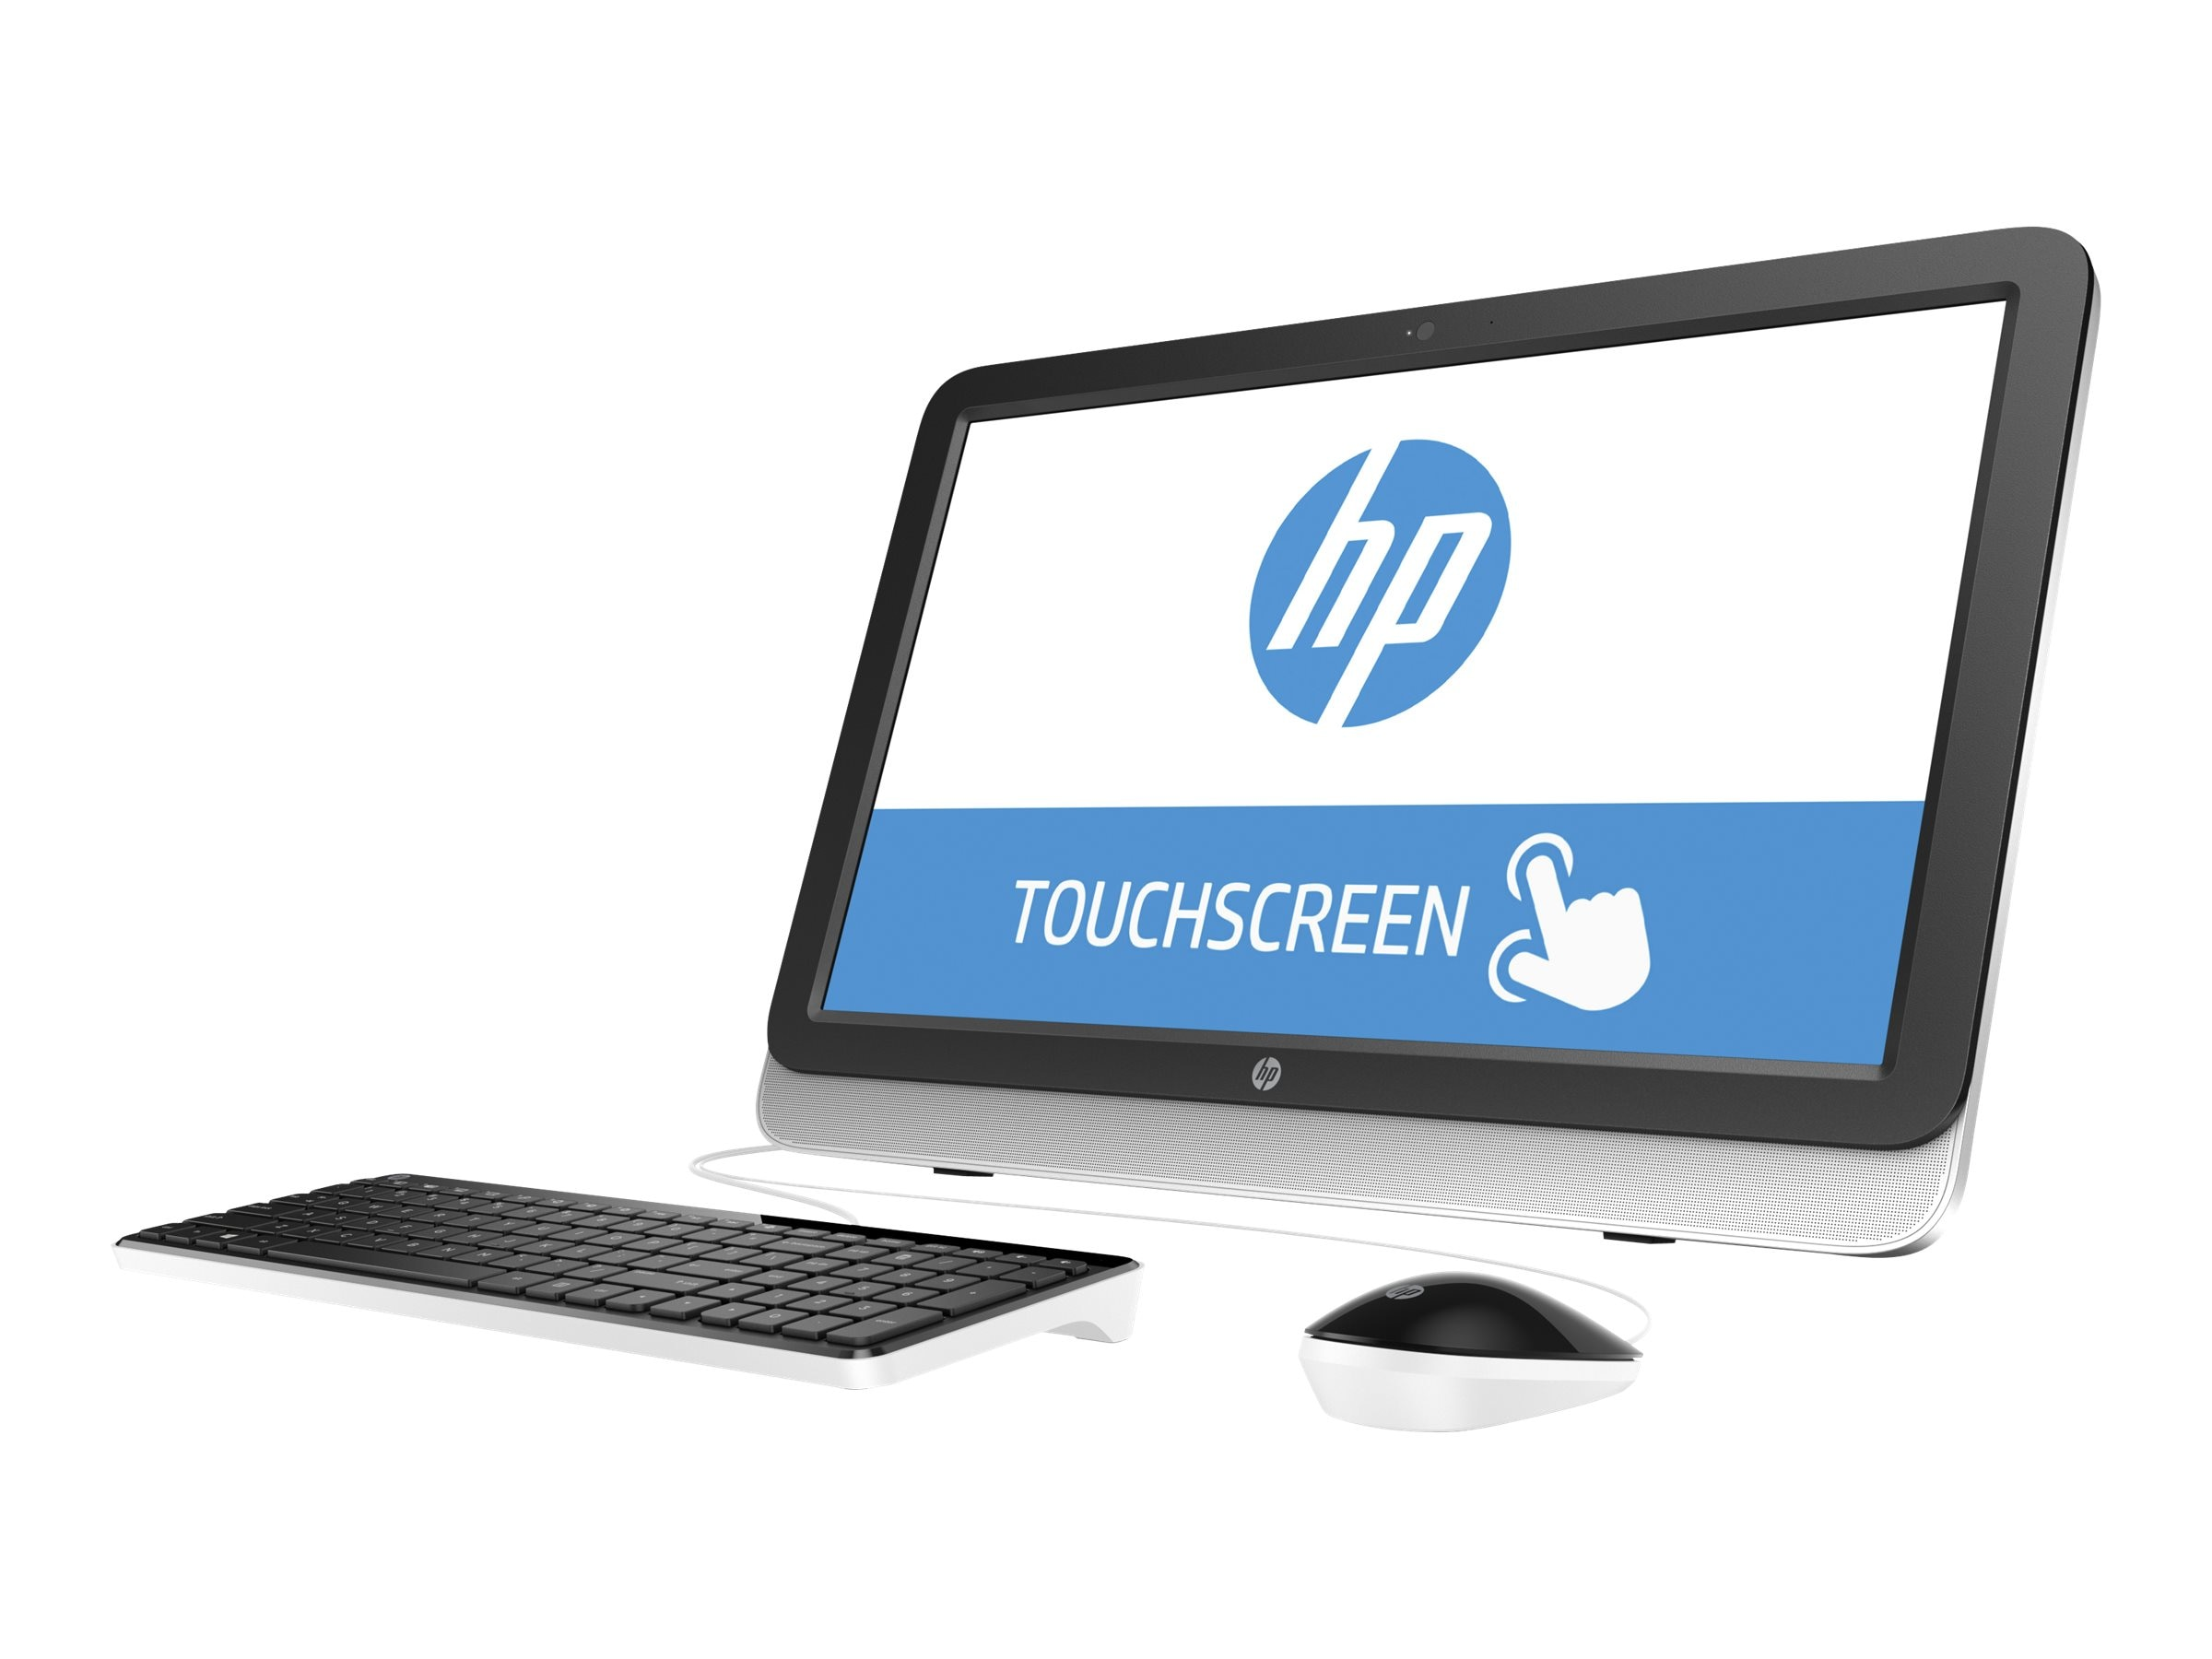 HP 22-3120 AIO AMD A6-6310 4GB 1TB DVD-RW WL 21.5 W10, M9Z57AA#ABA, 30811859, Desktops - All-in-One